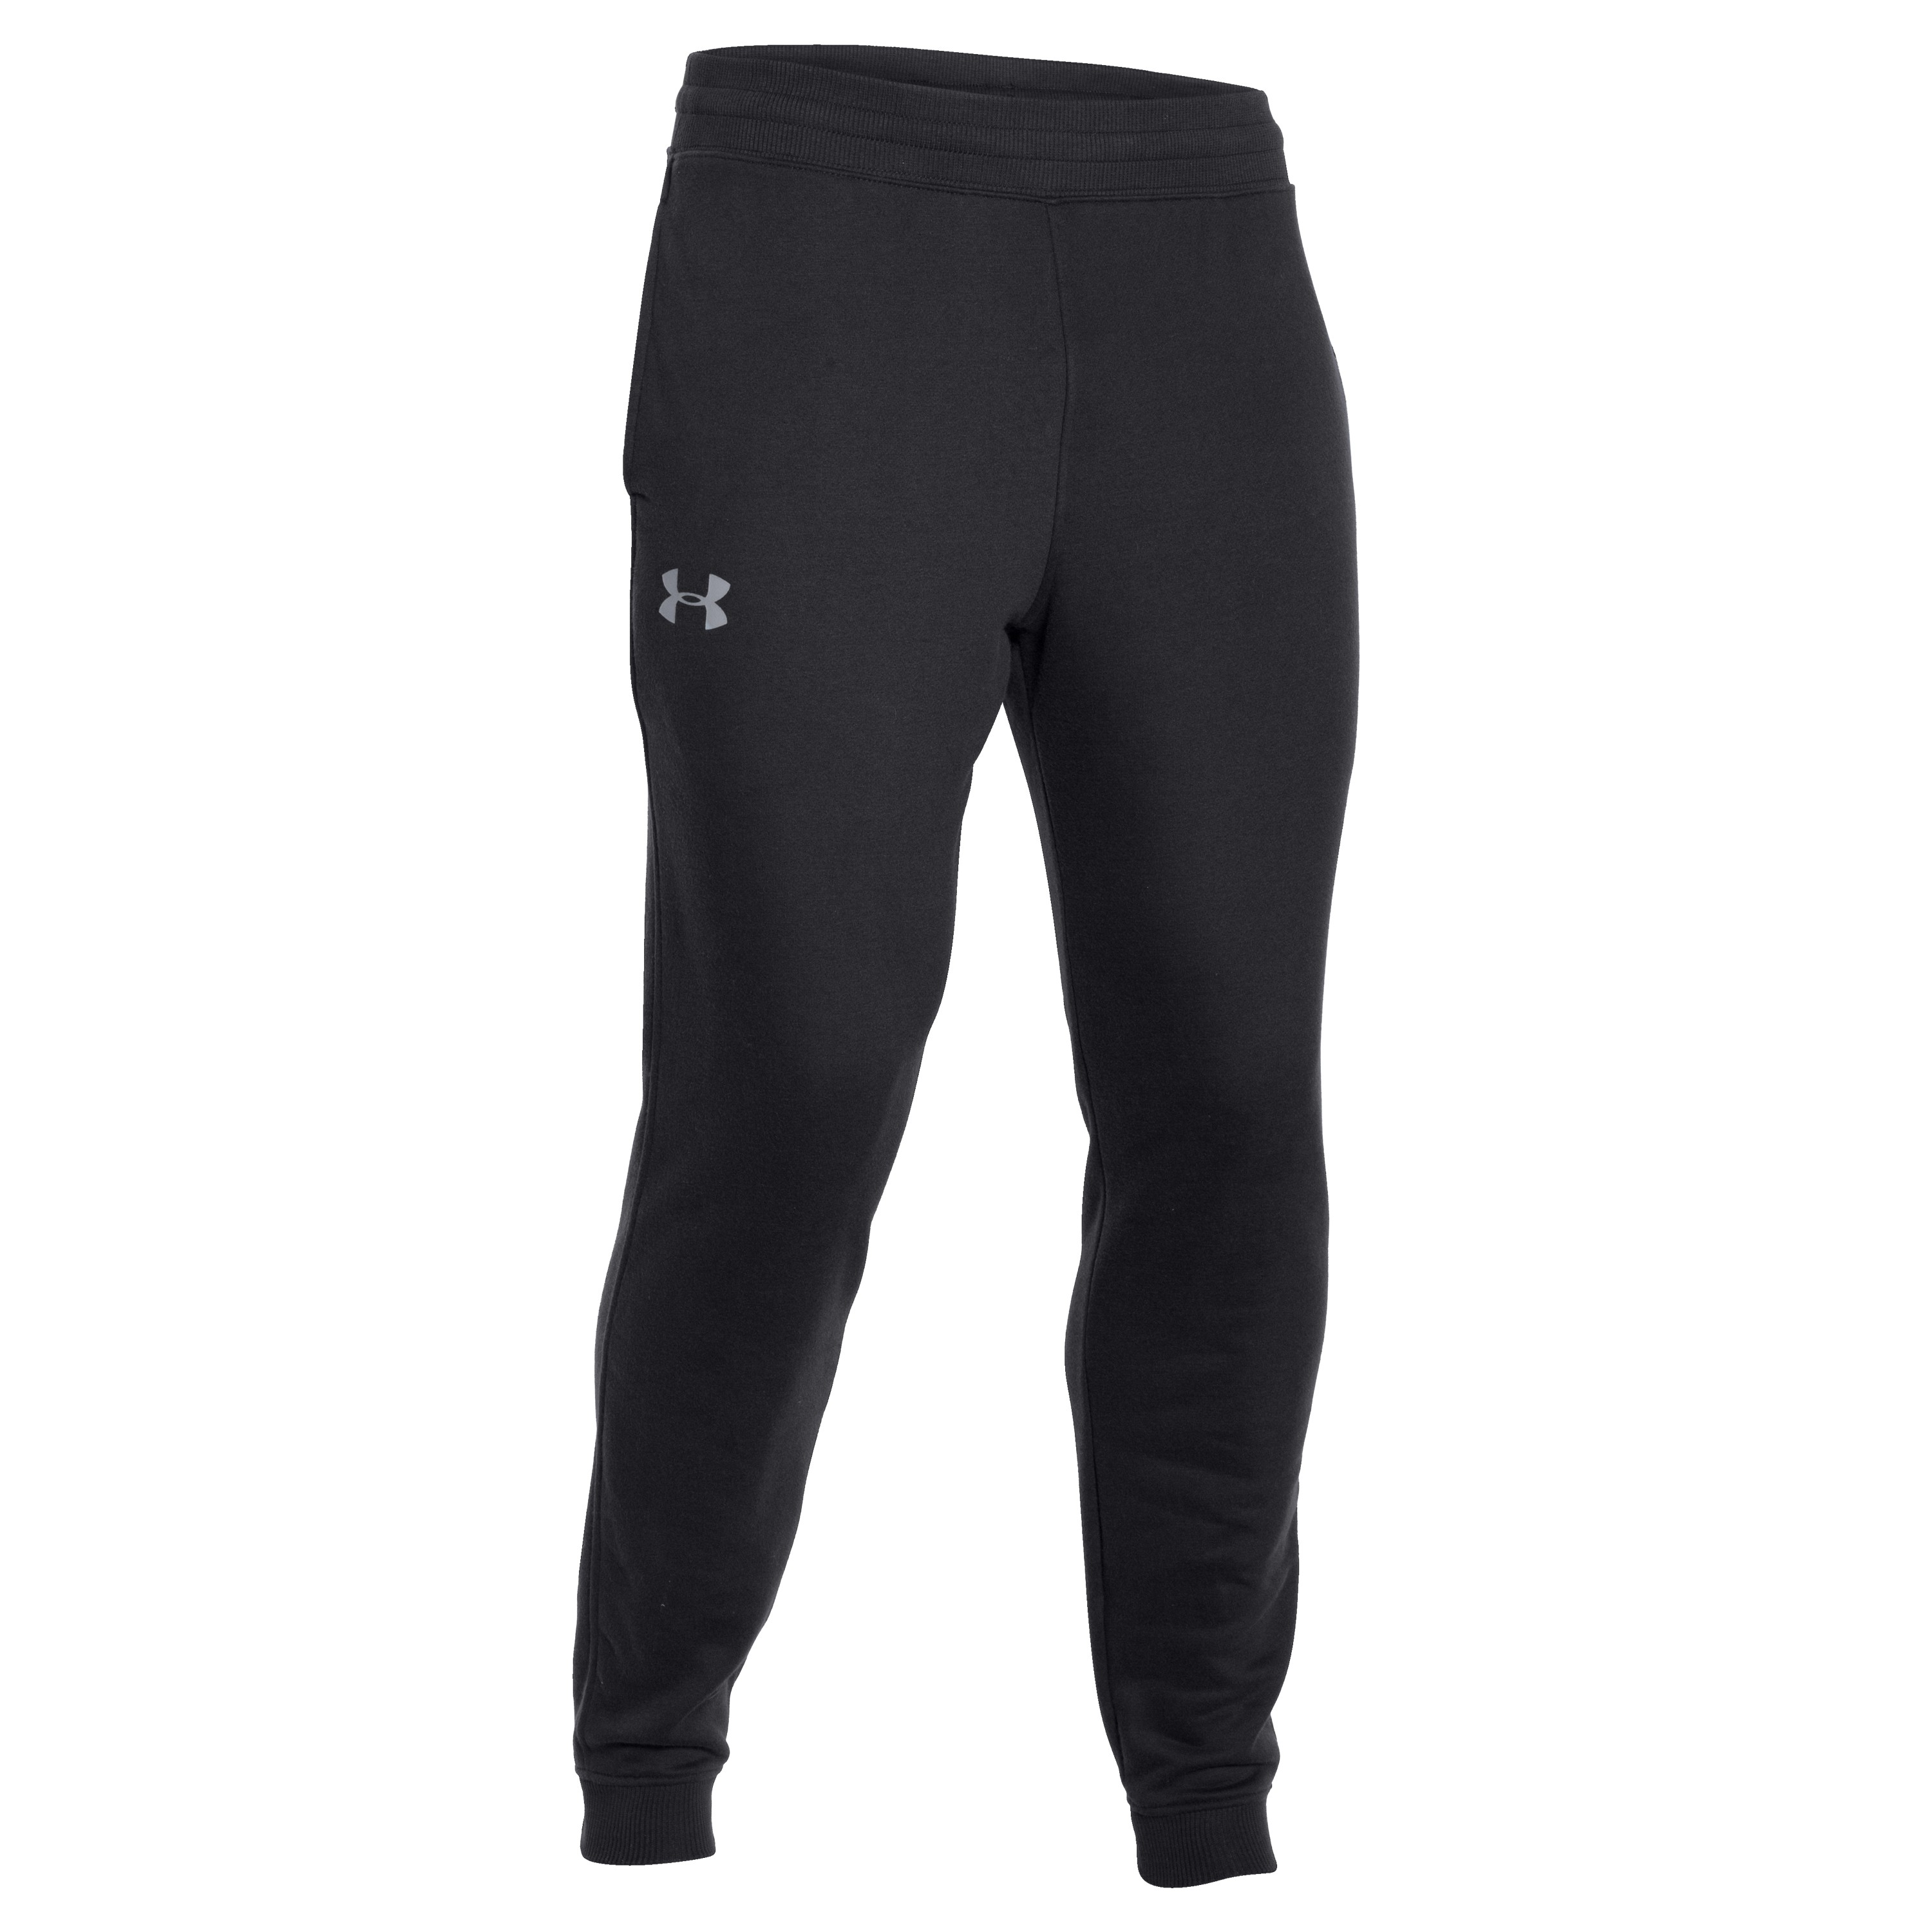 Under Armour Pants Rival Graphic Print black